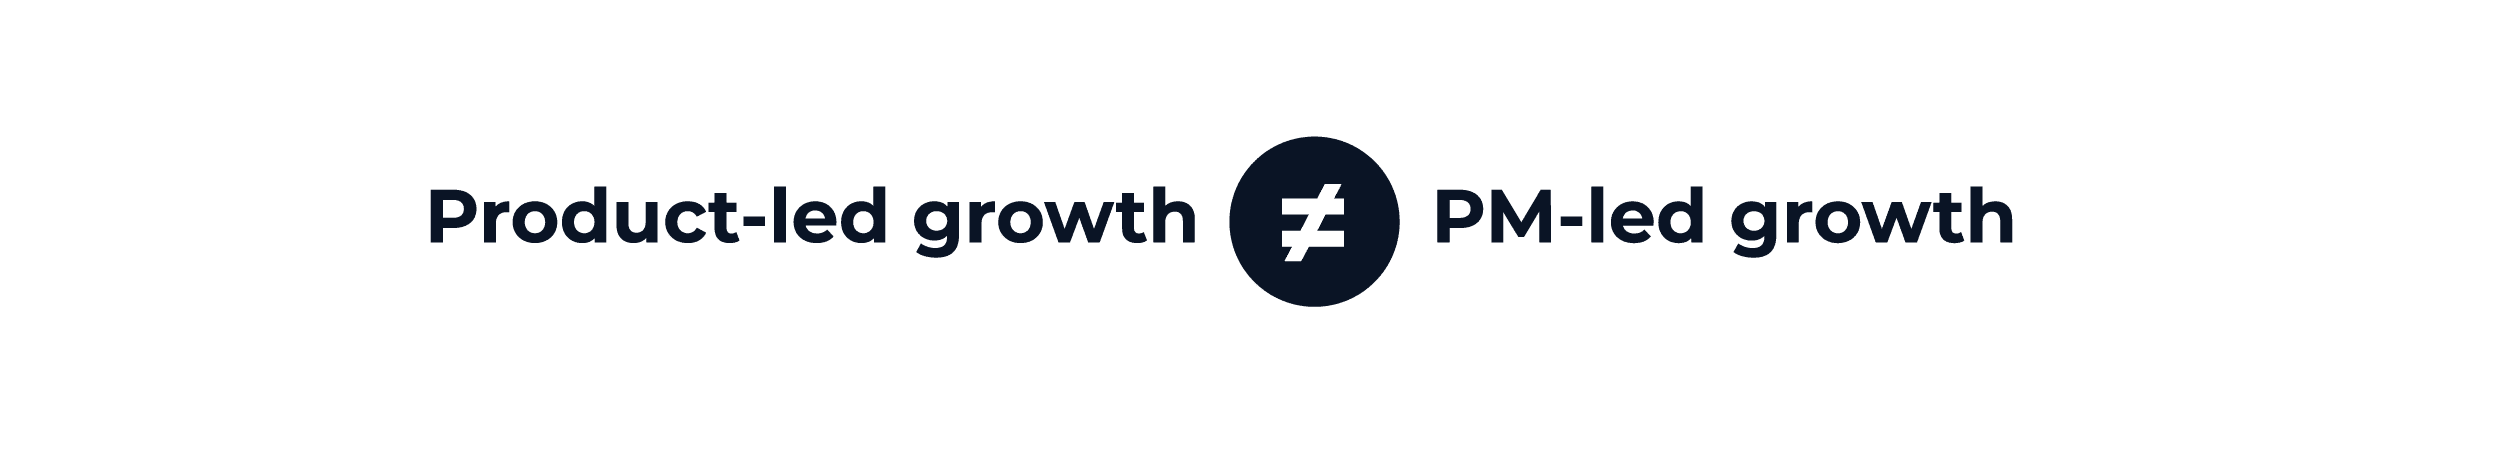 This image says: product-led growth does not equal PM-led growth. This is an illustration of the fact that product managers are not the sole owners of PLG. This image is from the Product-Led Growth Collective.